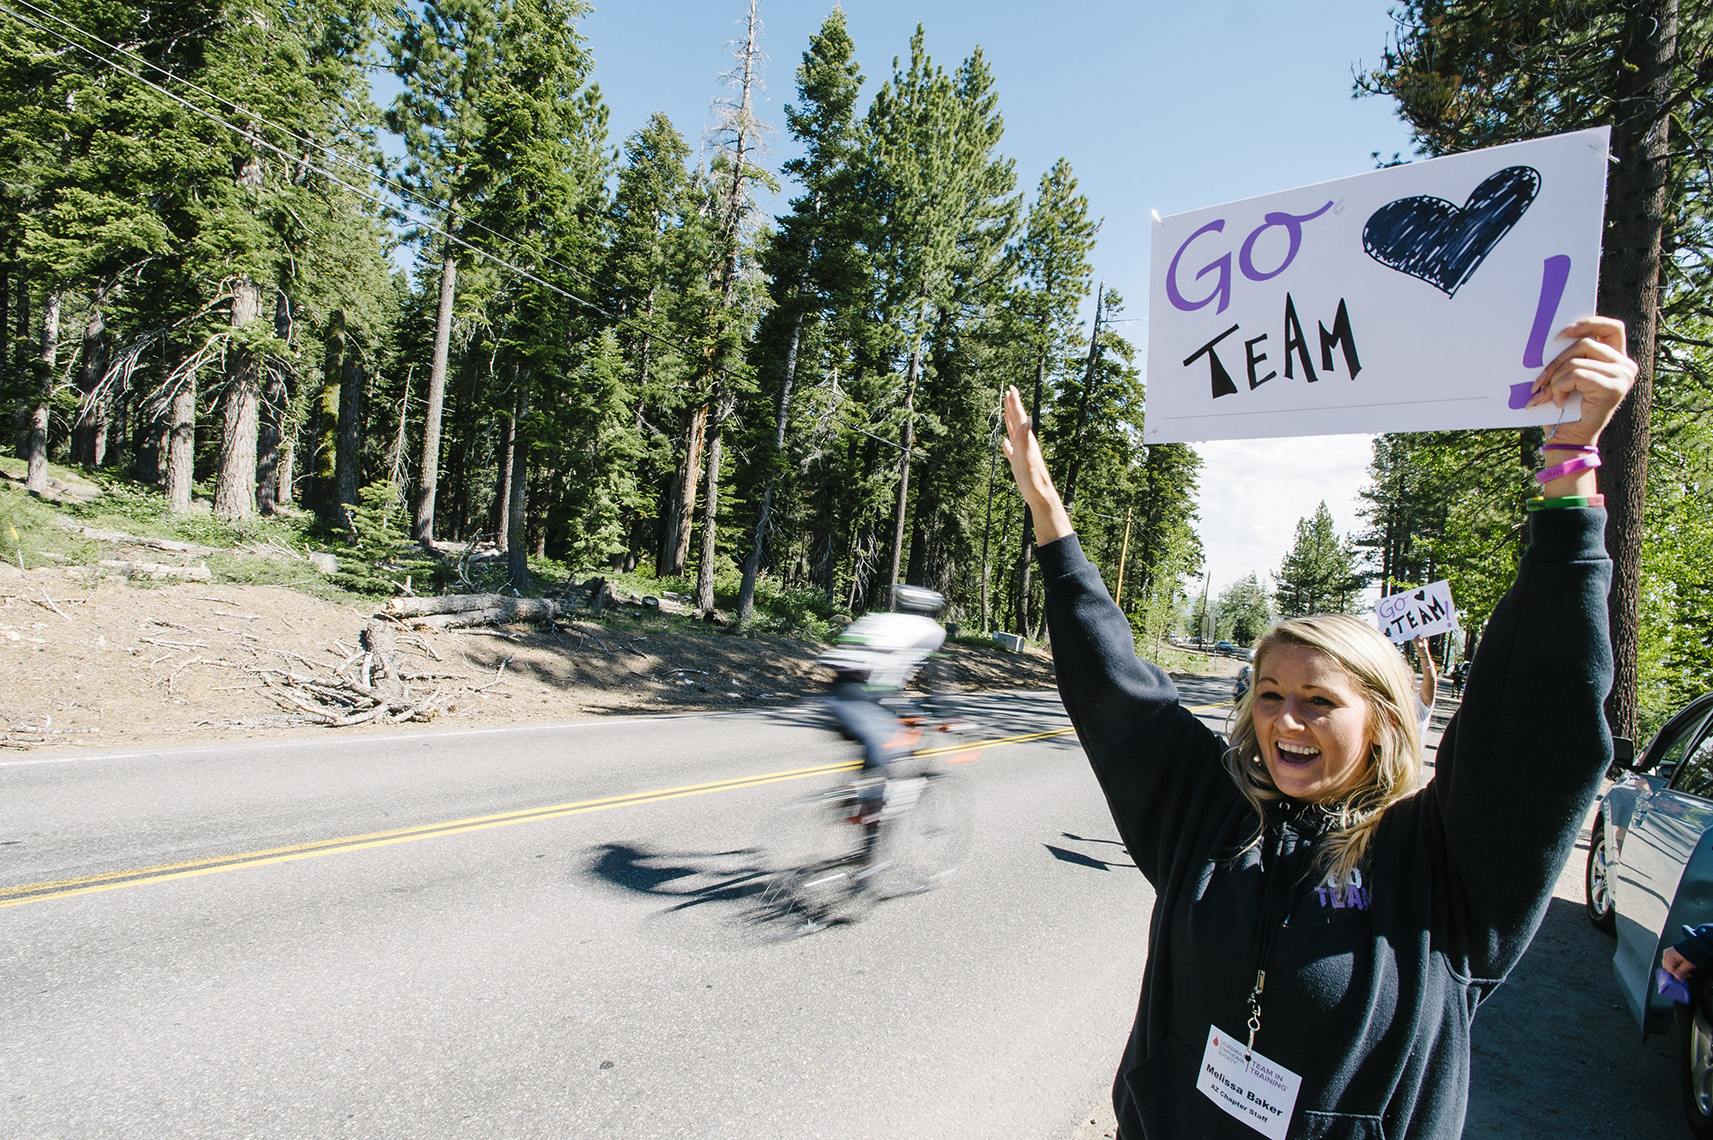 team-in-training-supporter-go-team-ambbr-lake-tahoe